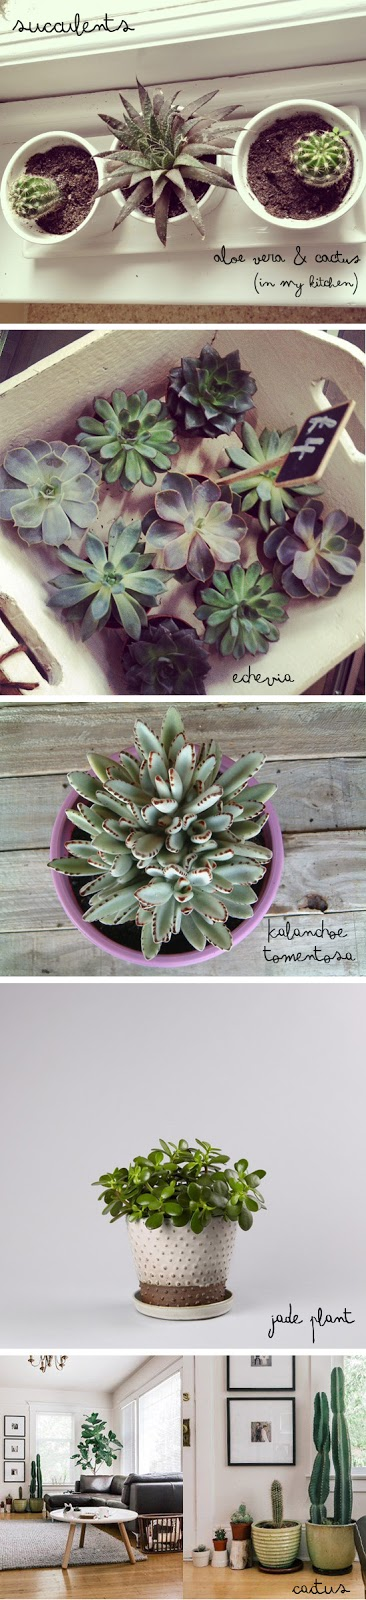 succulents for the home